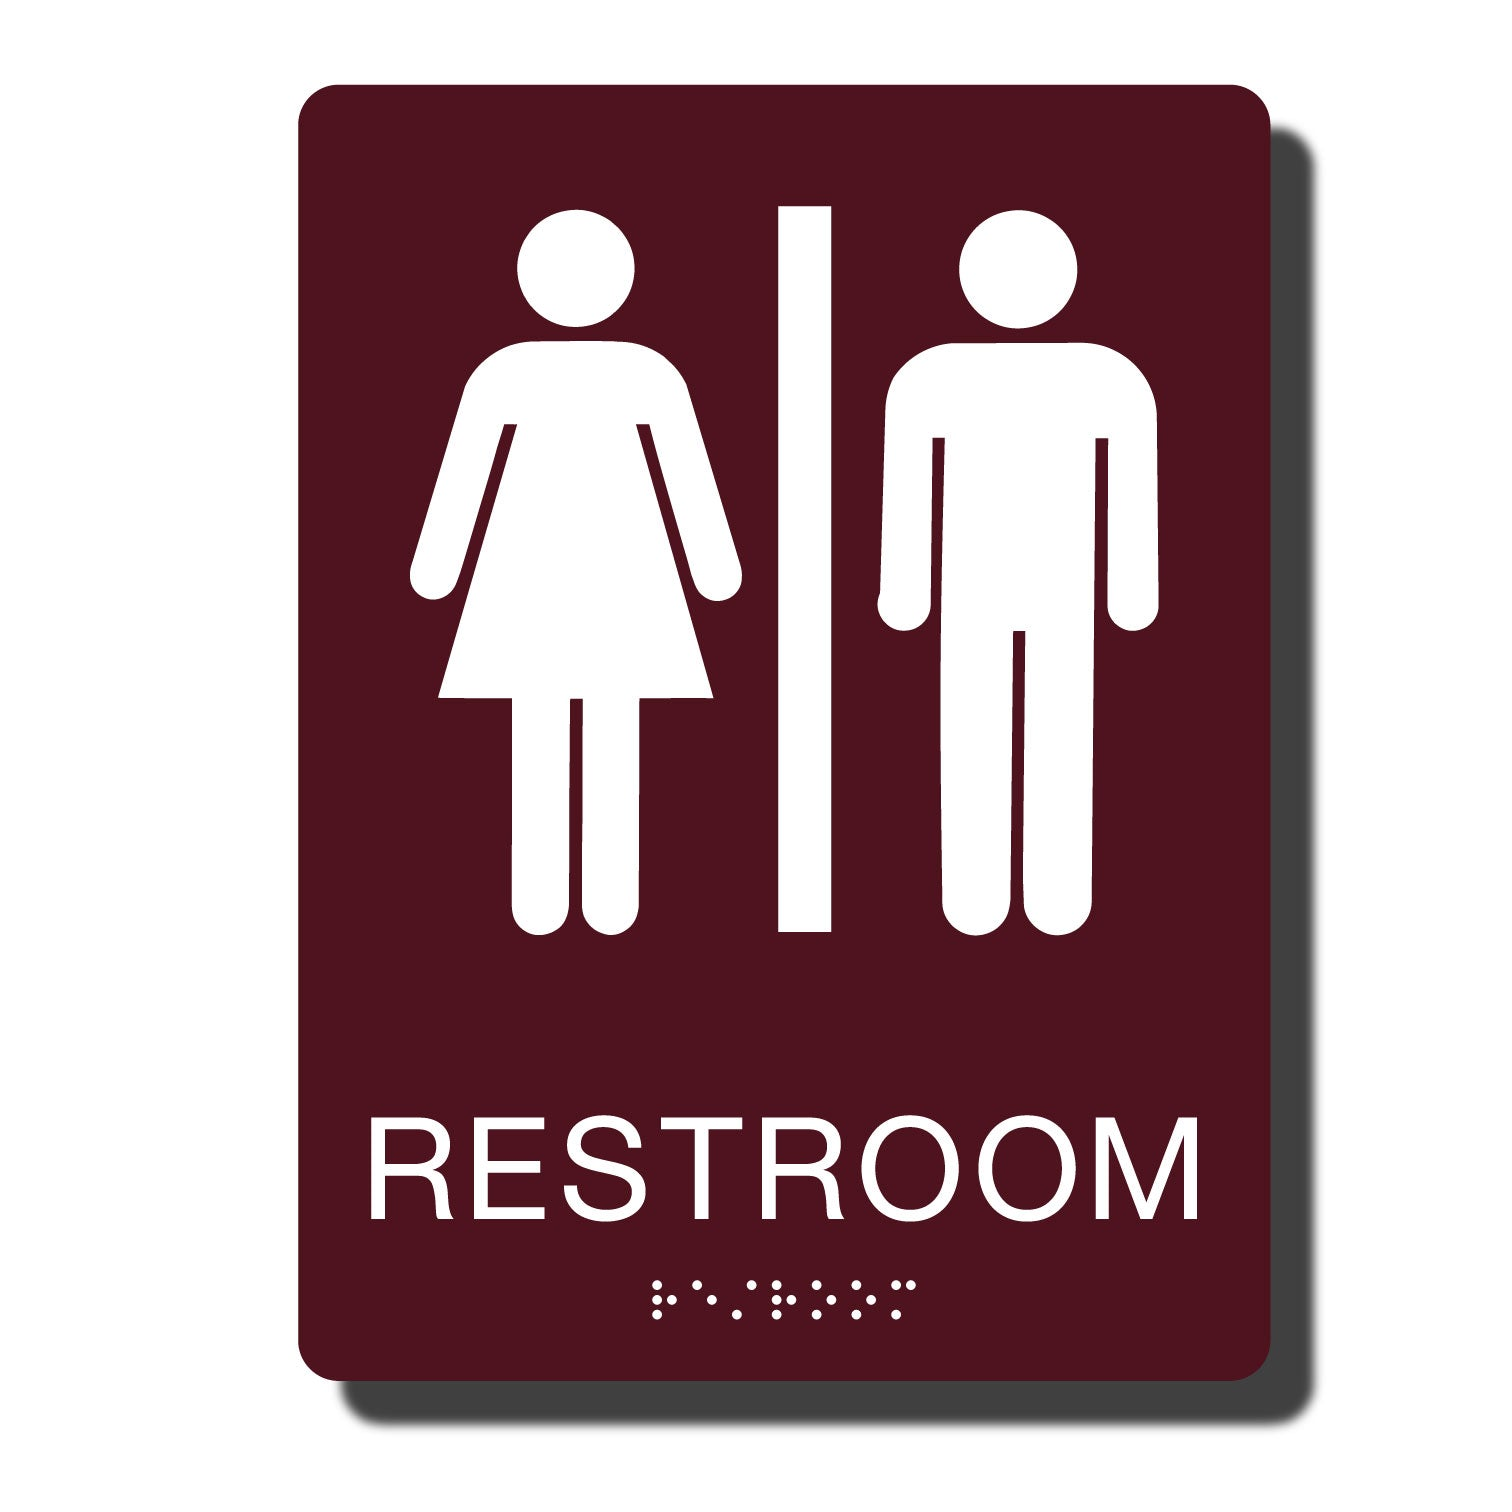 Standard ADA Sign - NapADASigns - ADA Restroom Sign with Braille - Burgundy with White - 6